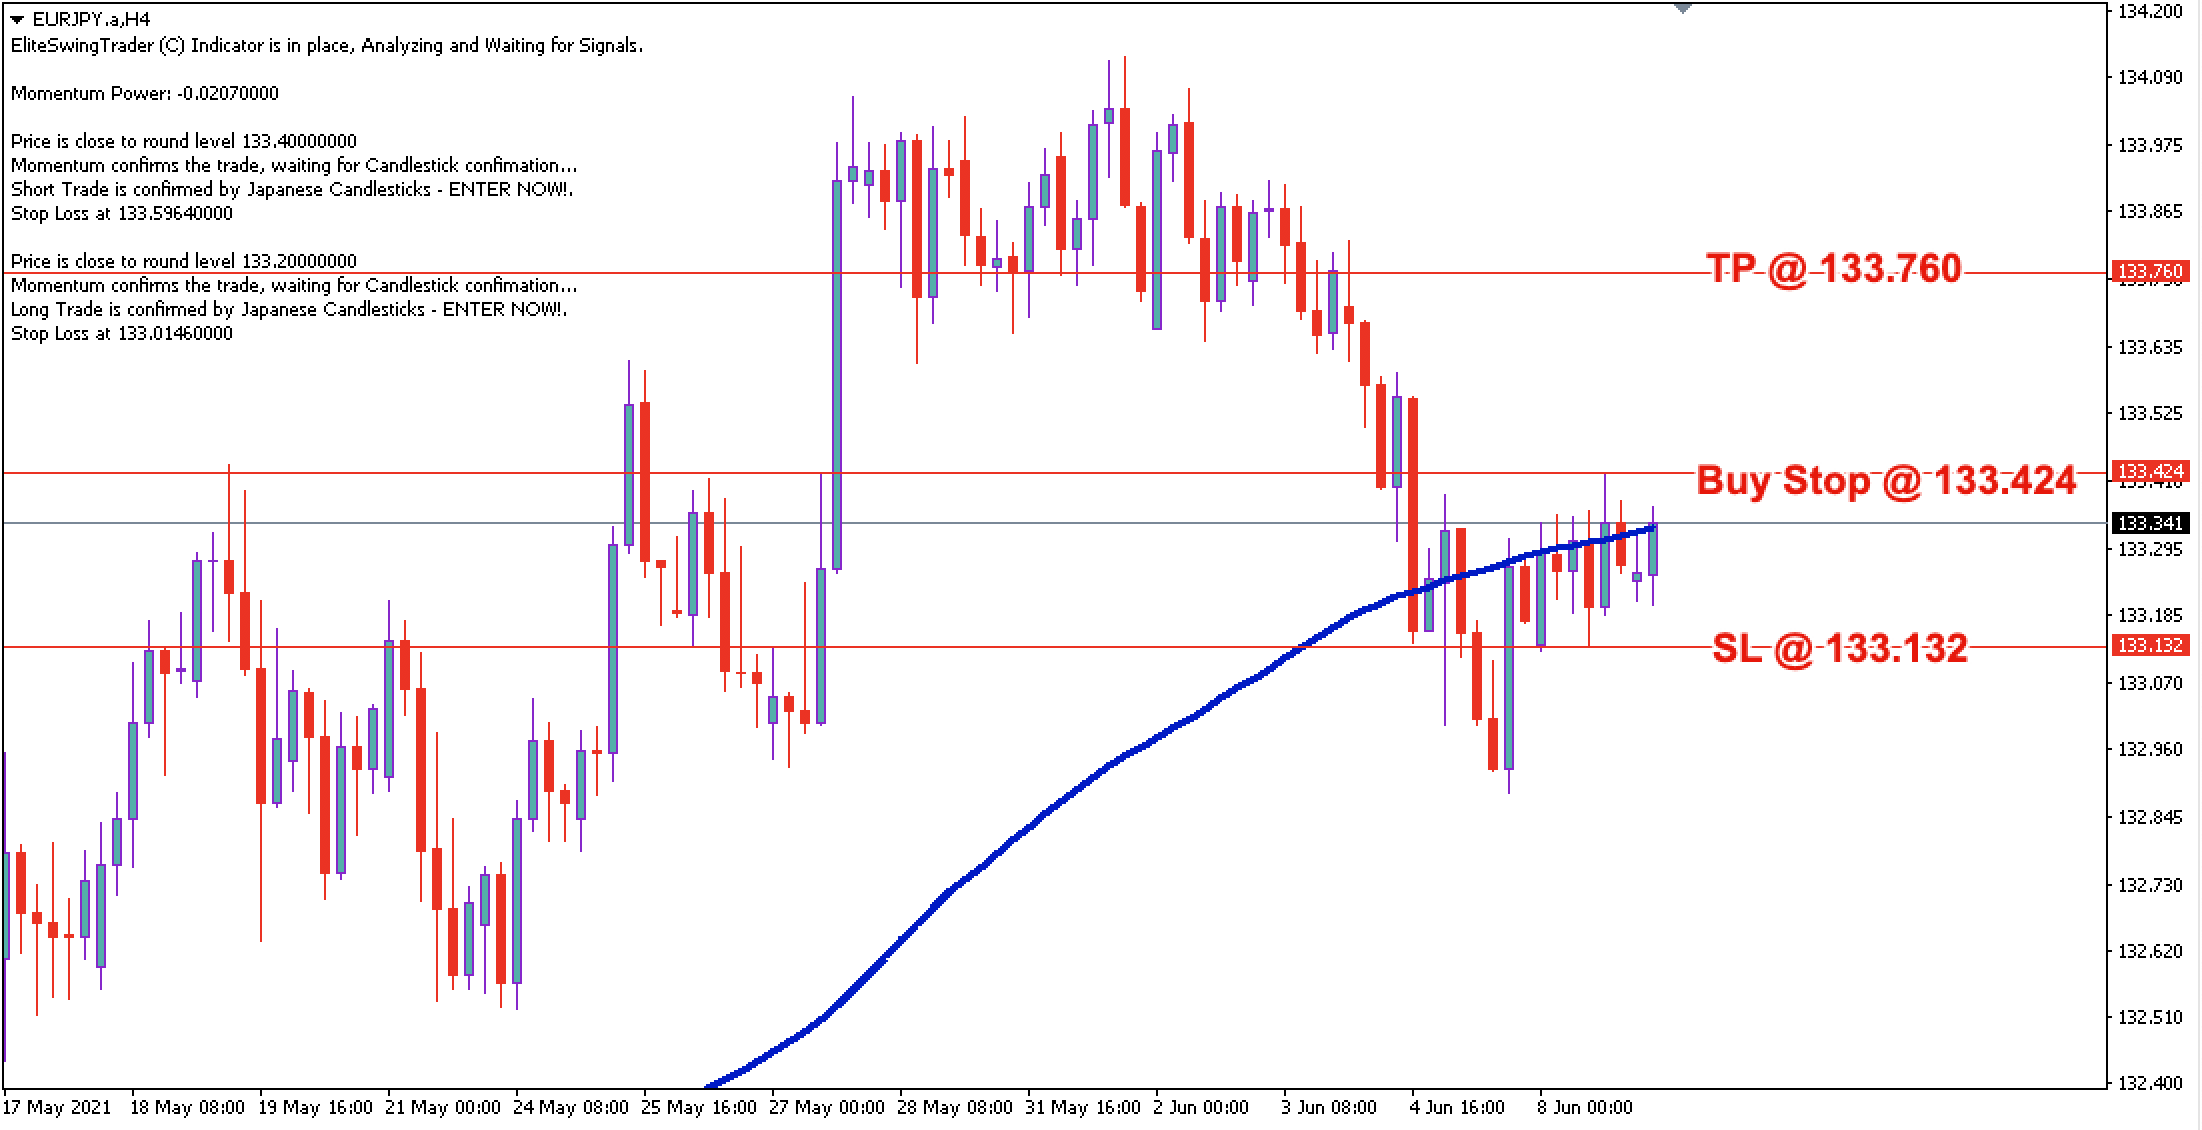 EUR/JPY Daily Price Forecast – 9th June 2021